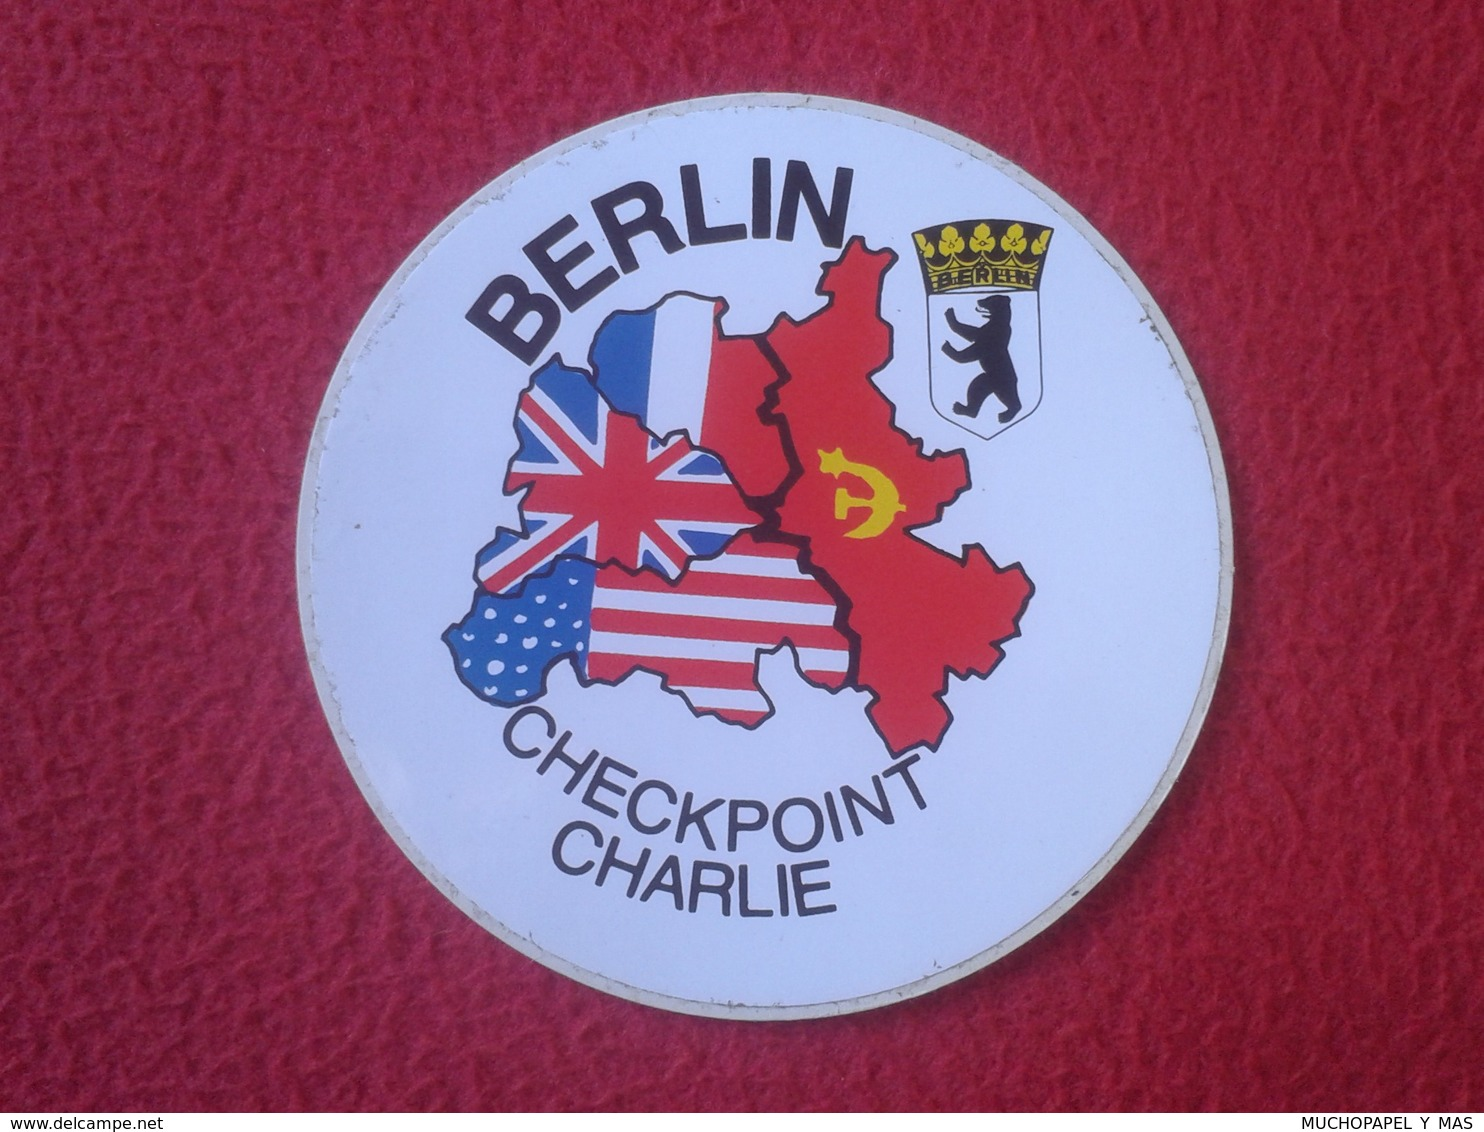 PEGATINA ADHESIVO STICKER DE BERLIN GERMANY CHECKPOINT CHARLIE EL MURO THE WALL DDR EAST WEST UNITED STATES FRANCE USSR - Stickers